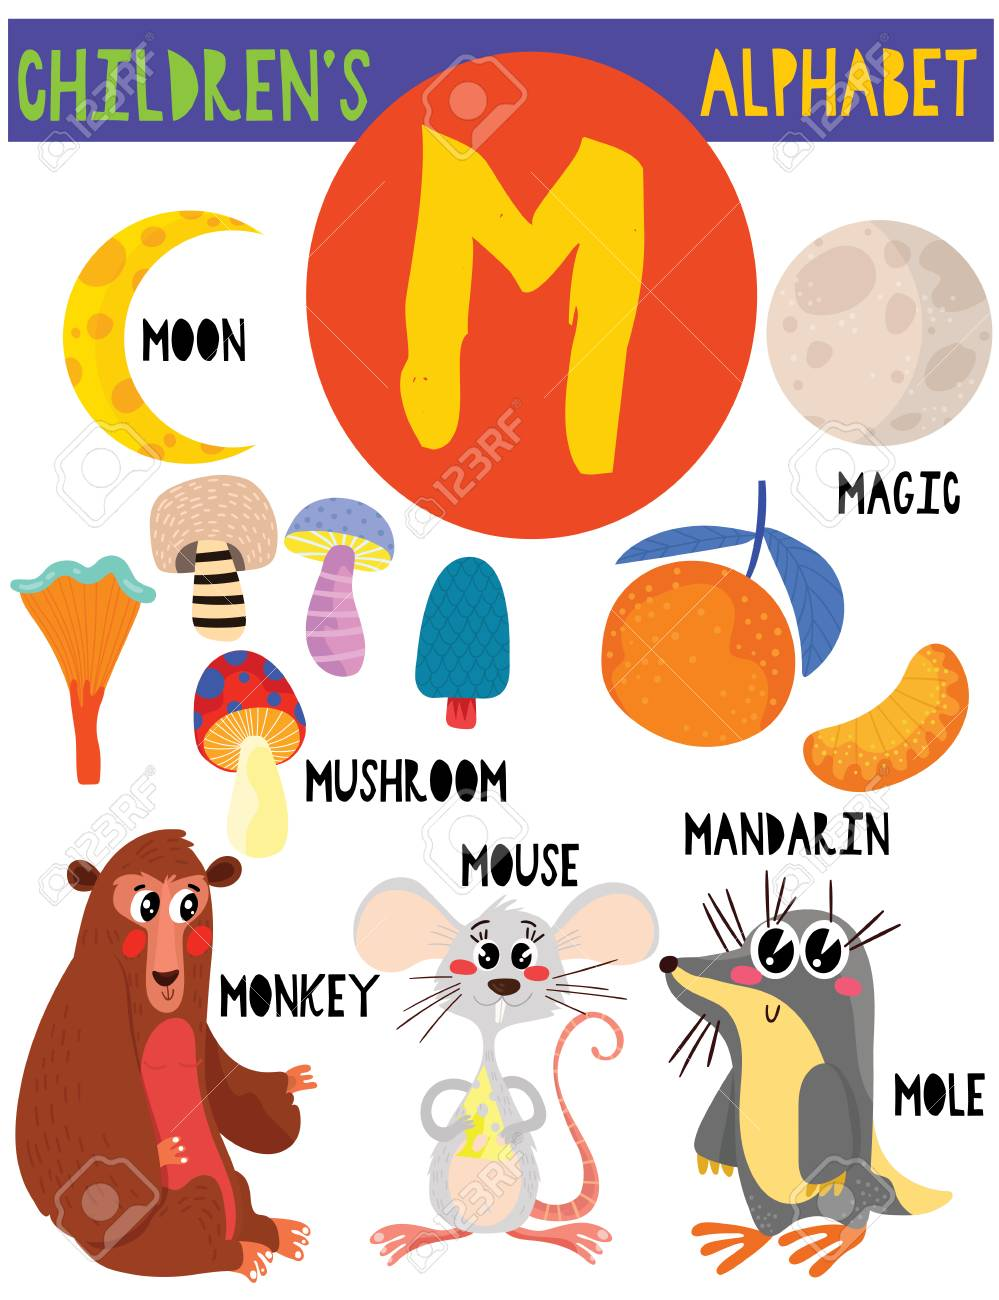 Letter M.Cute Children's Alphabet With Adorable Animals And Other